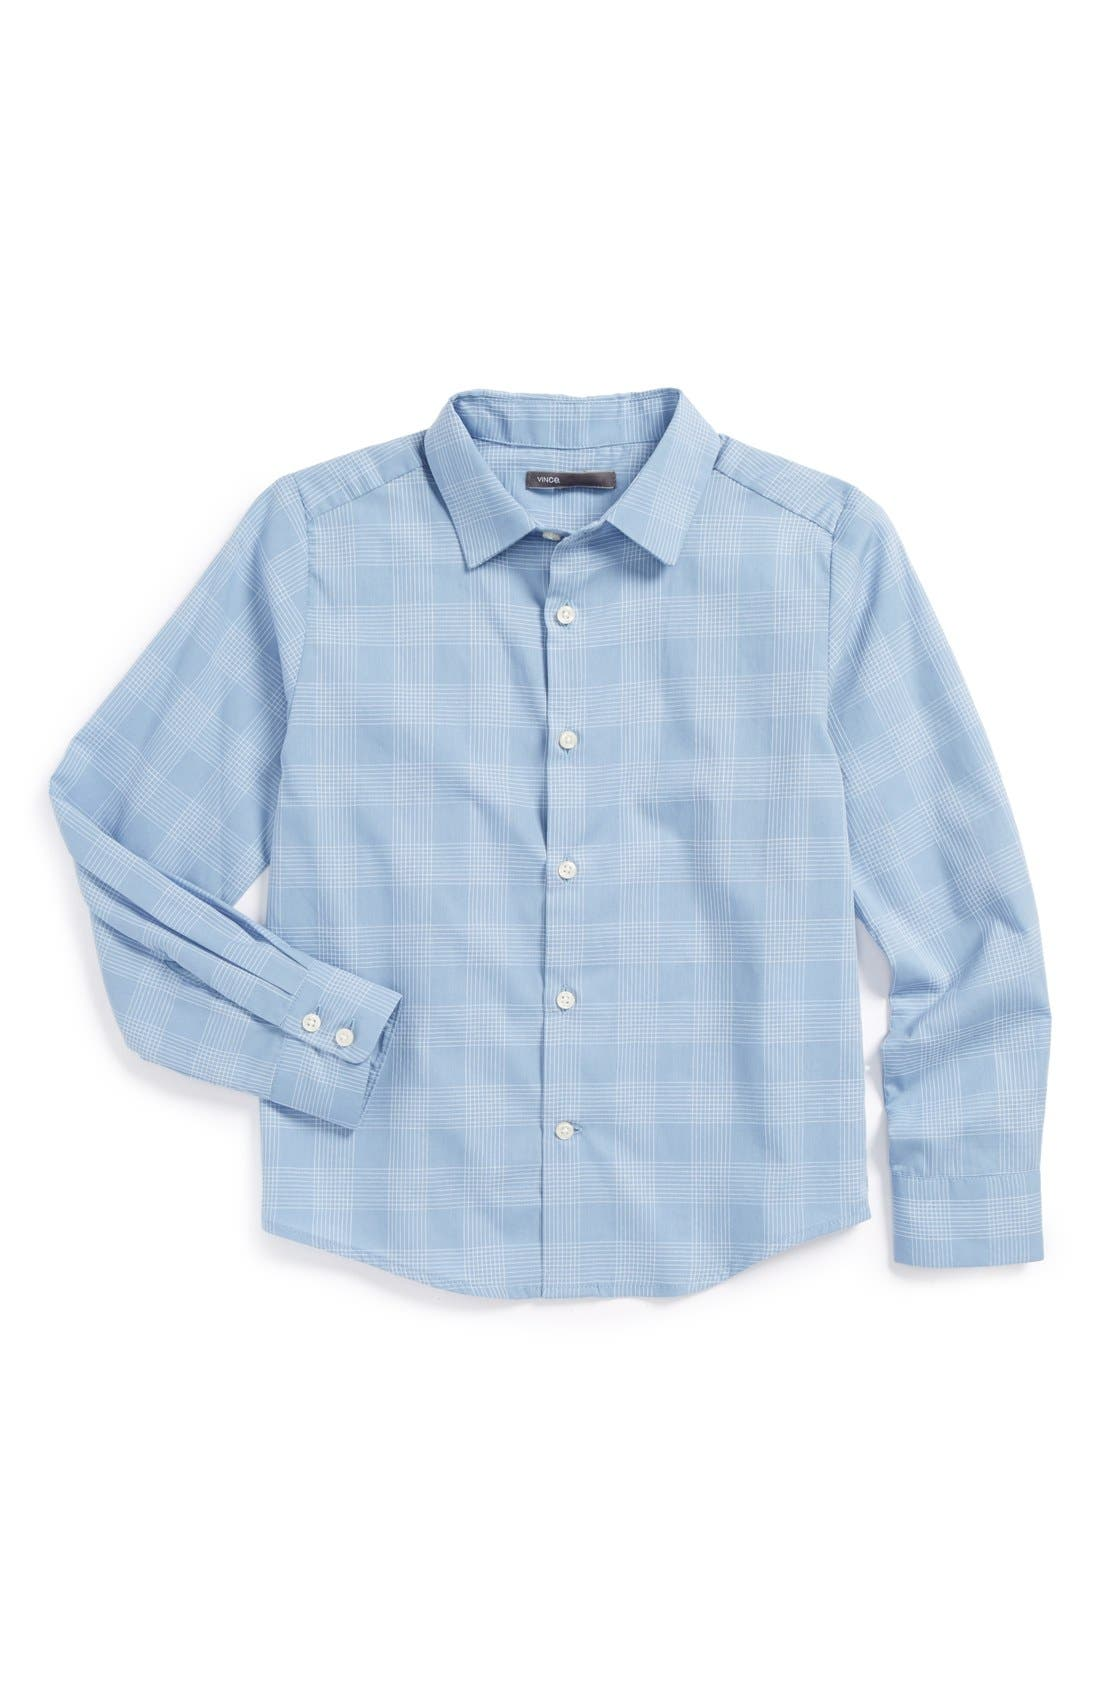 Main Image - Vince 'Dobby' Cotton Sport Shirt (Big Boys)